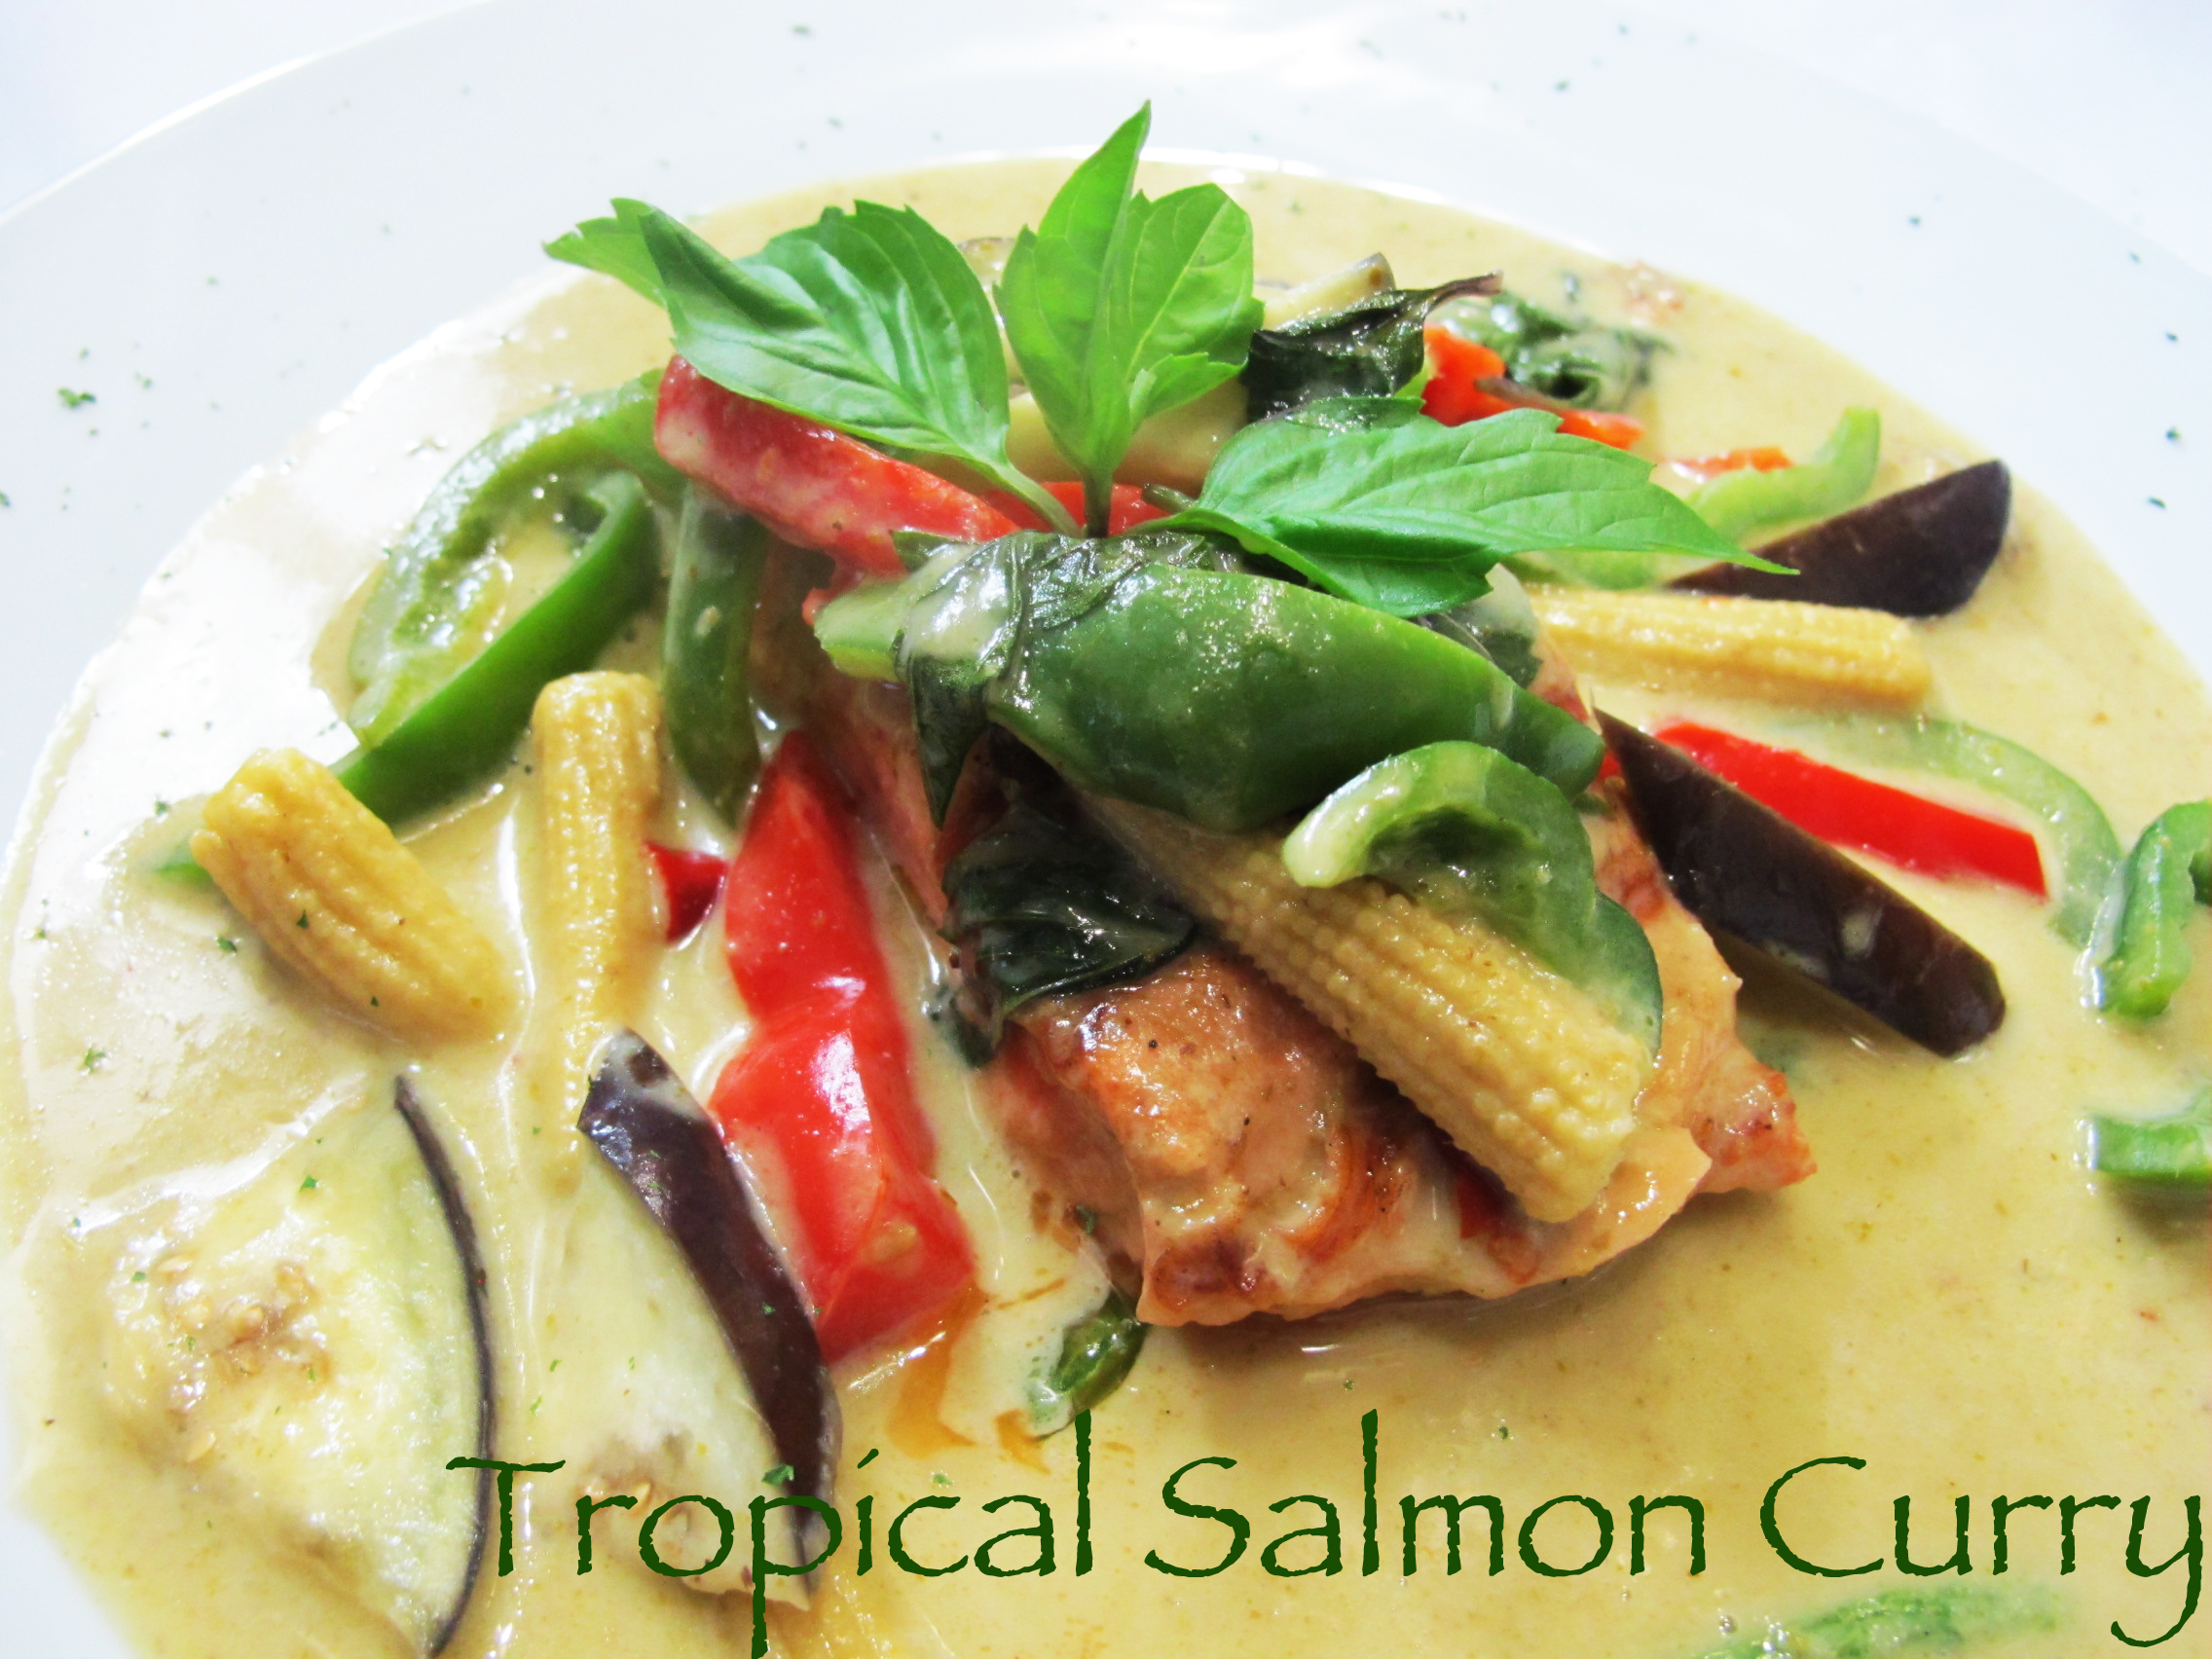 Tropical Salmon Curry 1.jpg